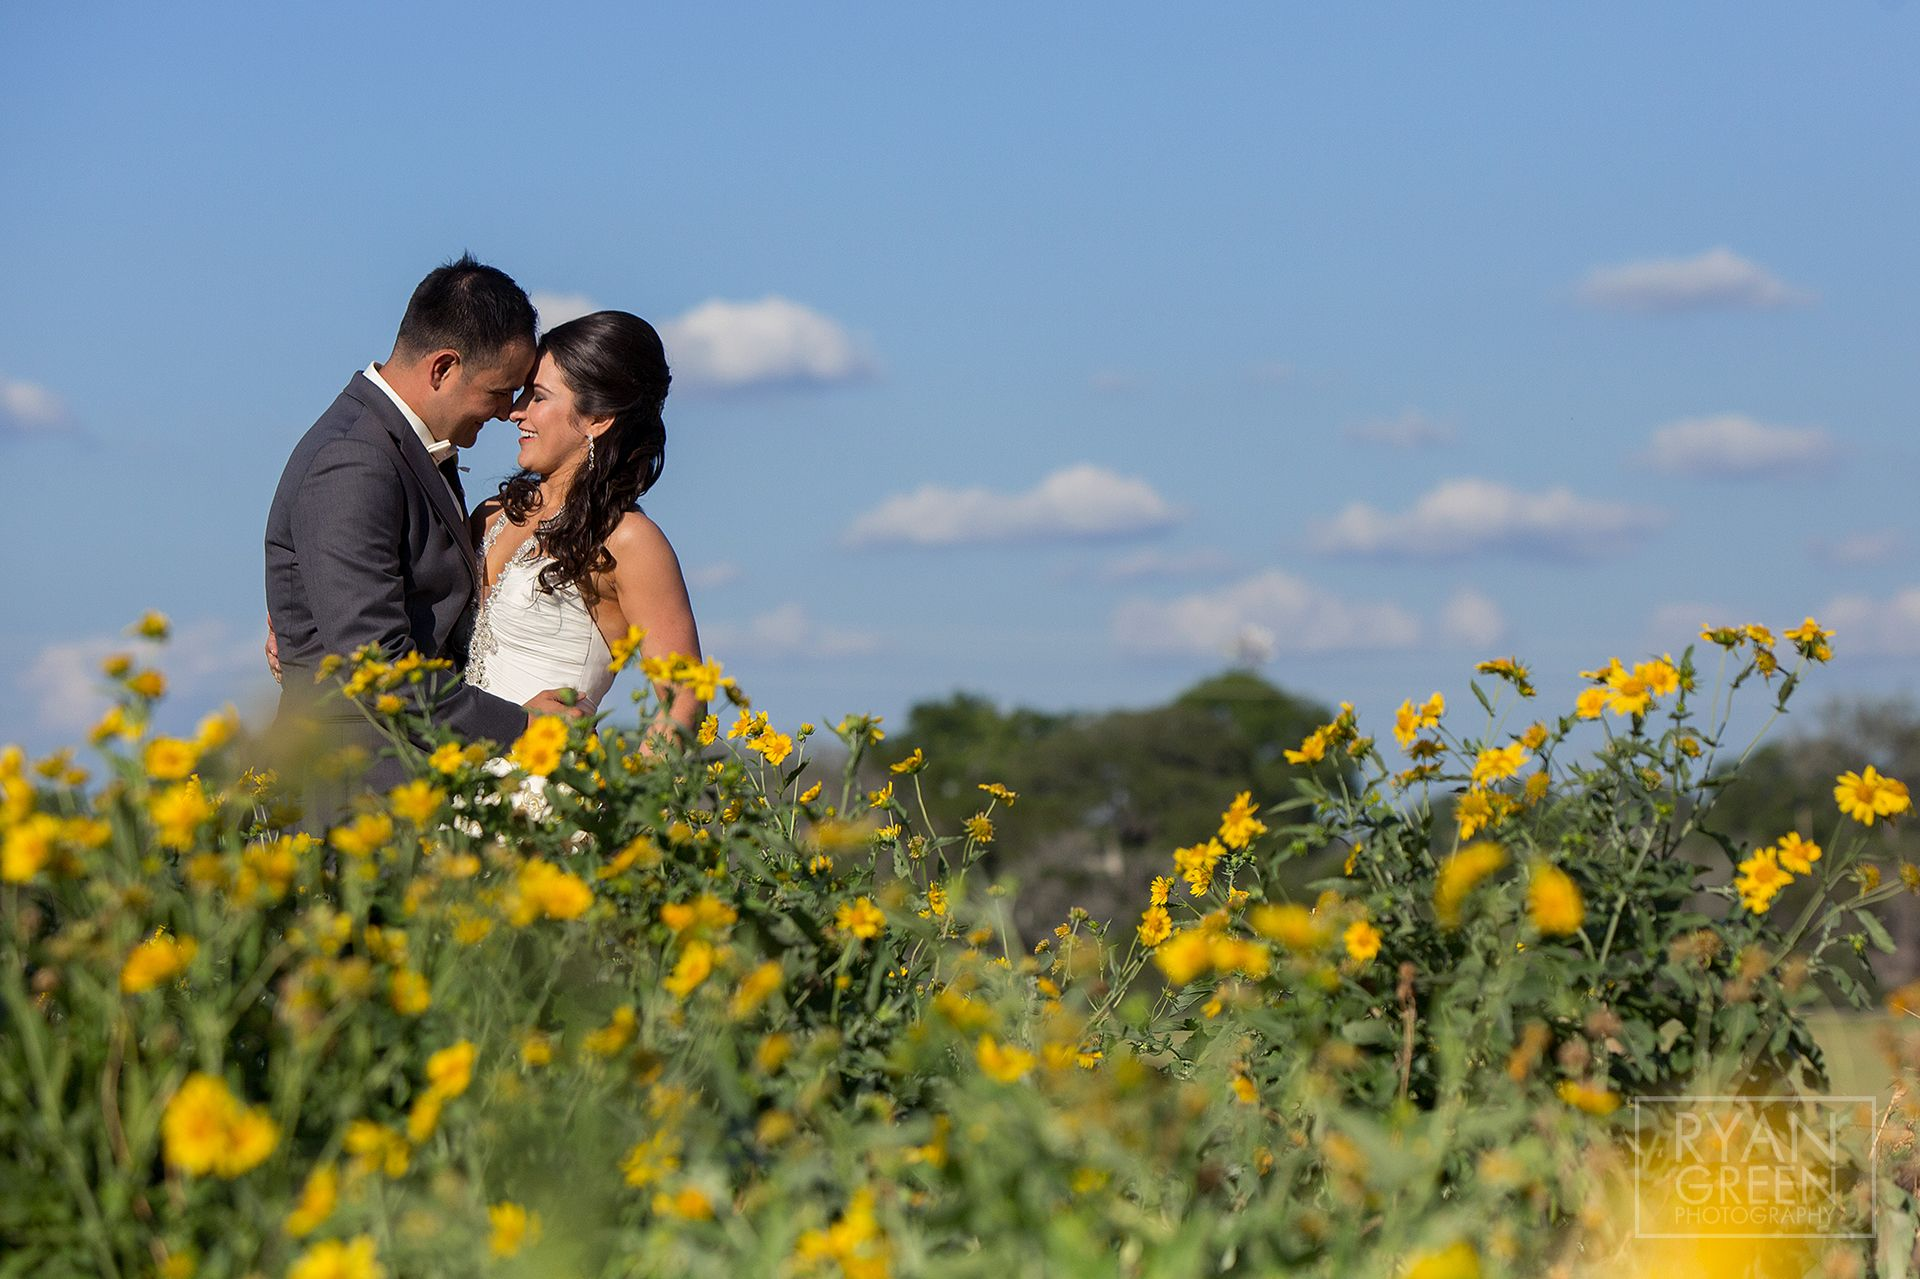 Spring in Texas! www.ryangreenphotography.com All photos by Austin Wedding Photographers Ryan & Lindsey Green